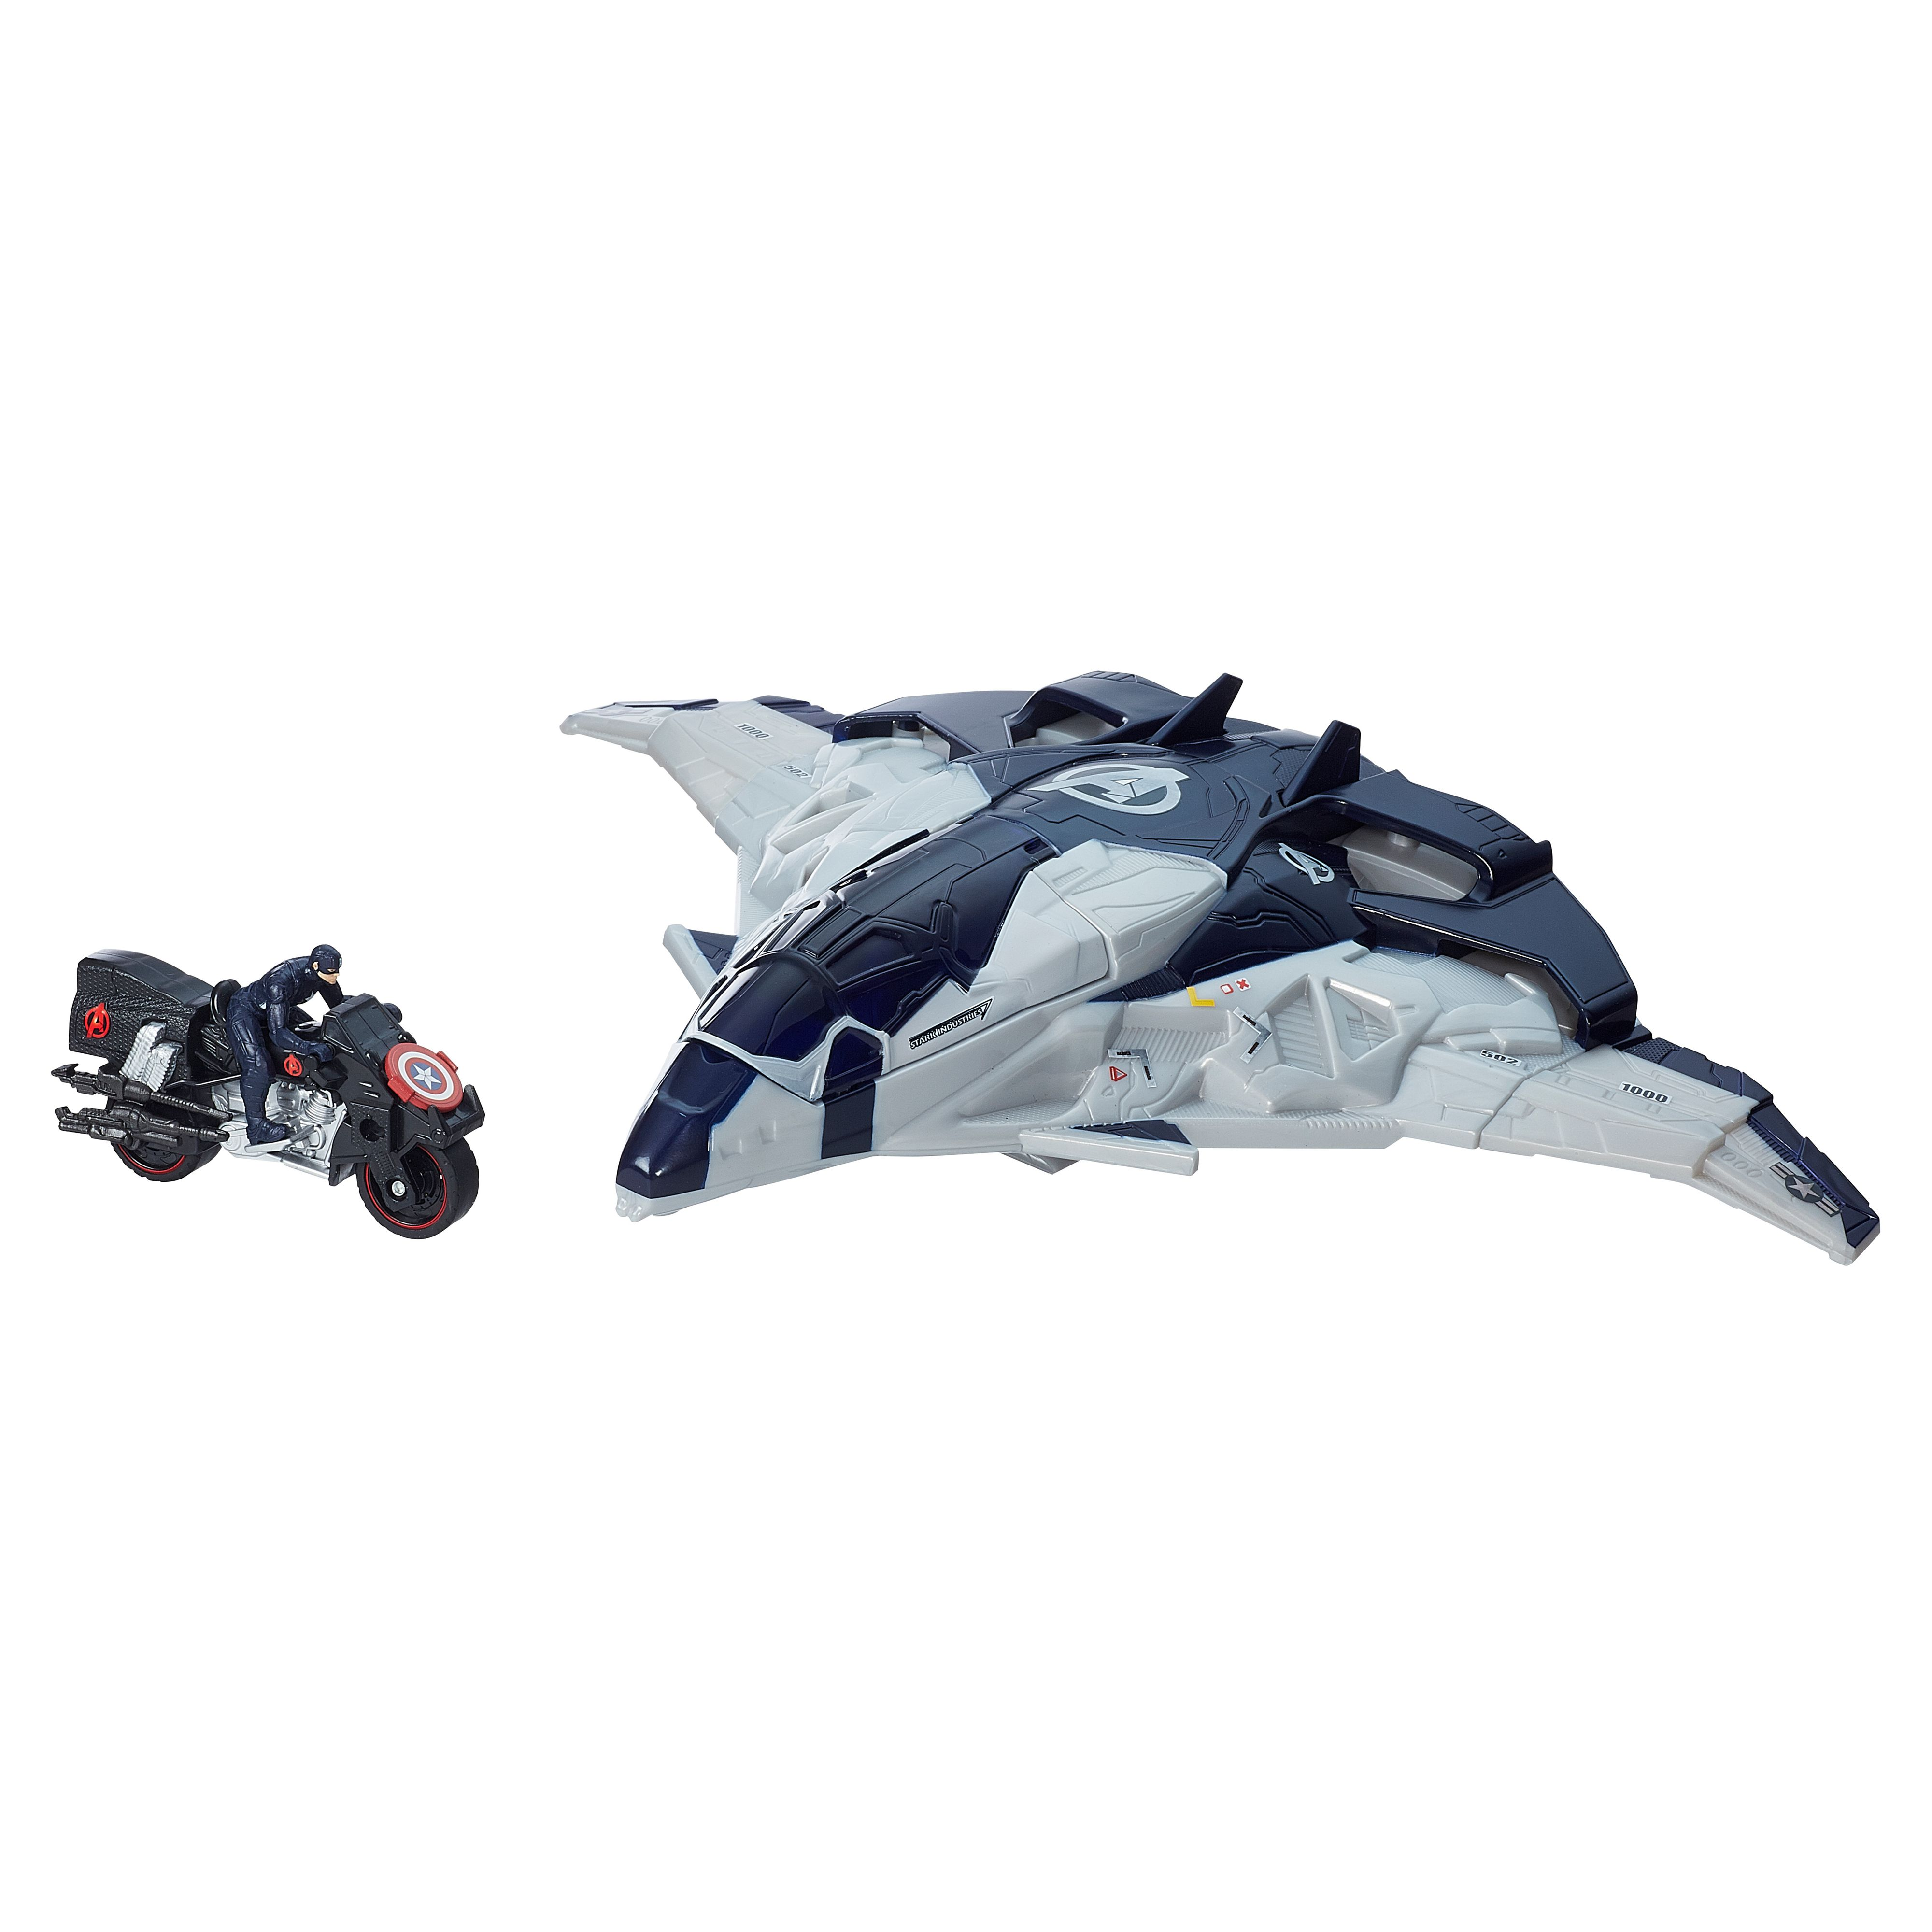 The Avengers Cycle blast quinjet